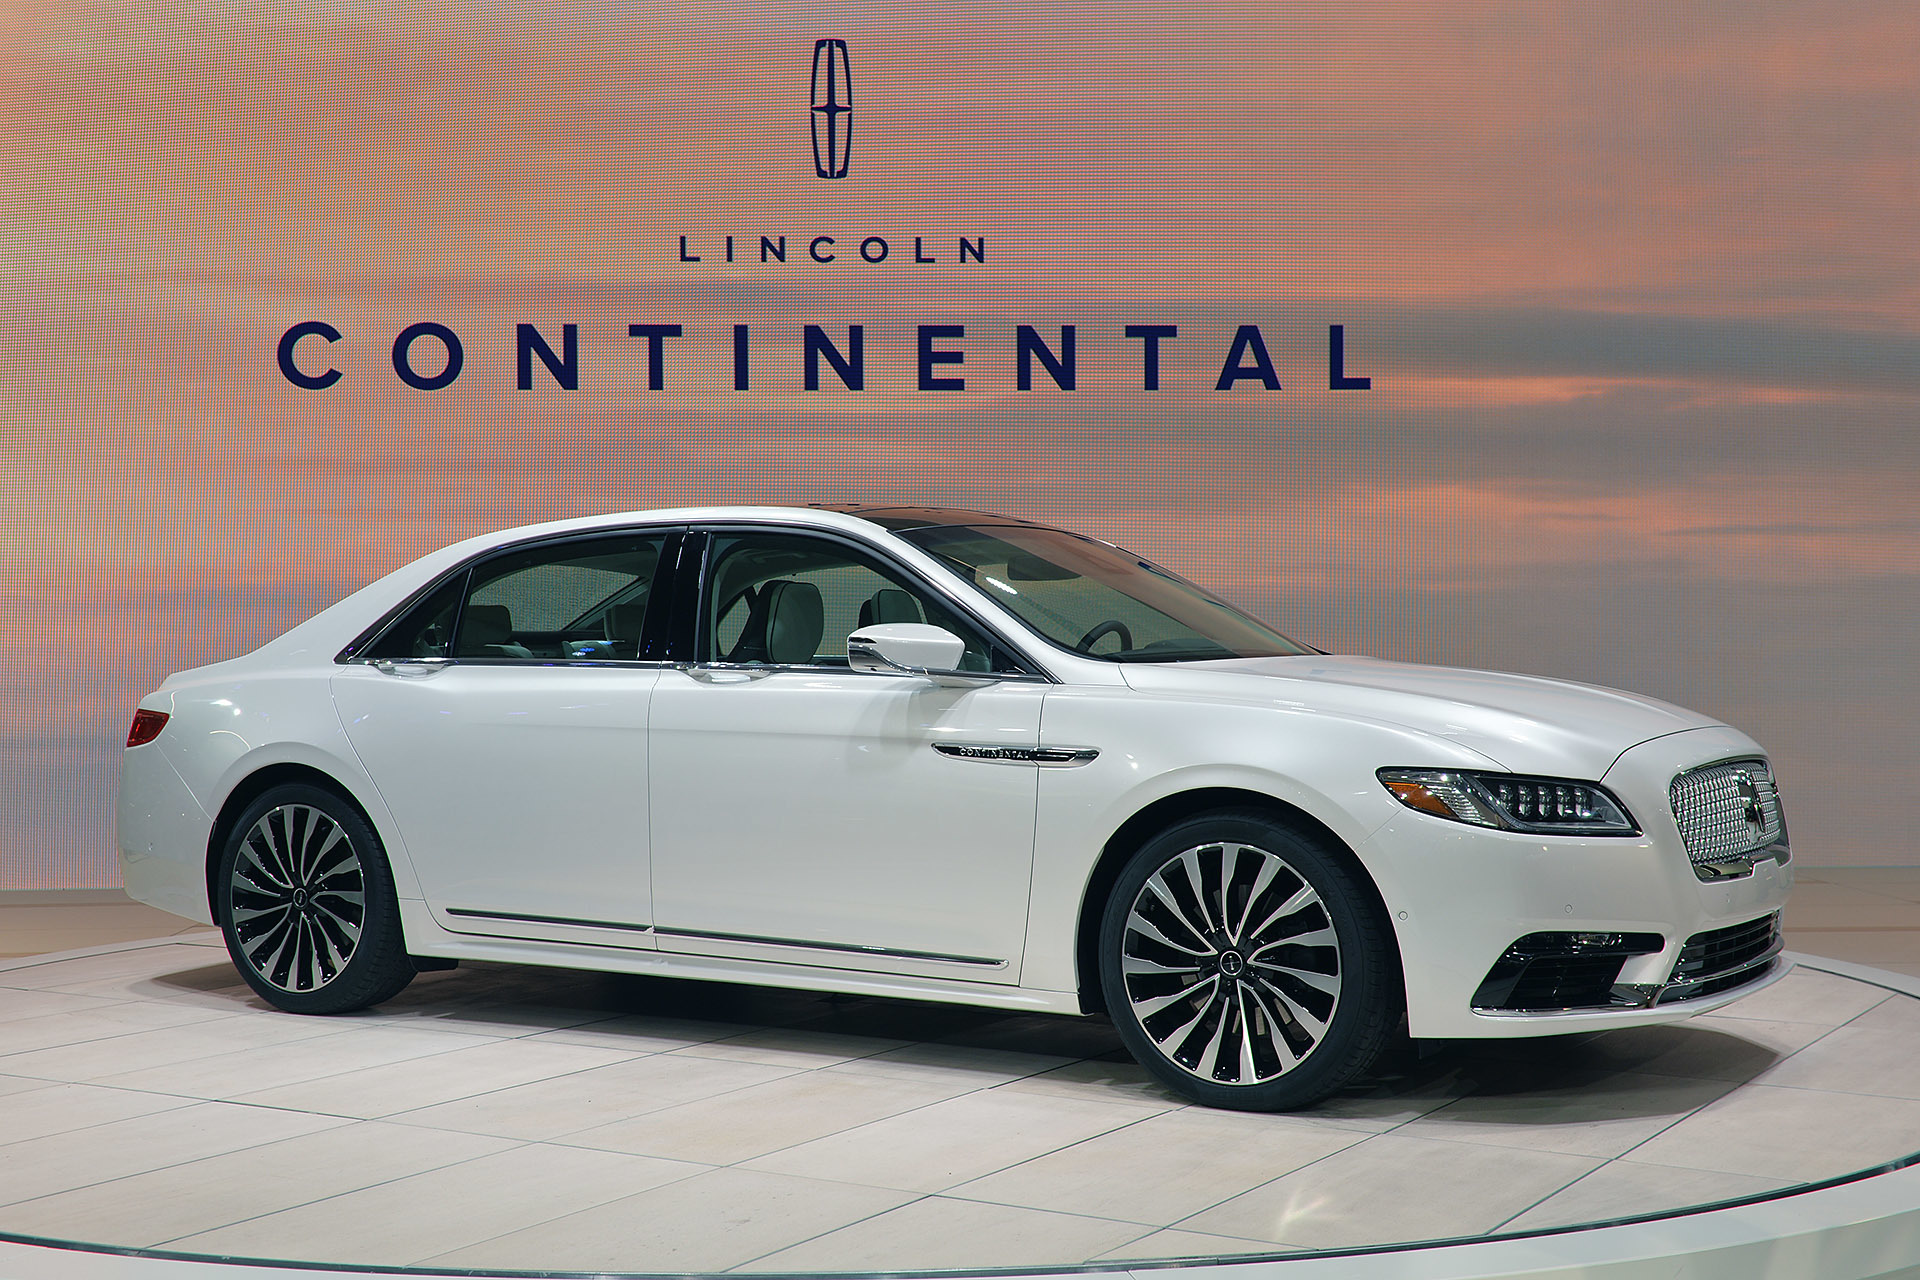 01-2017-lincoln-continental-detroit-1